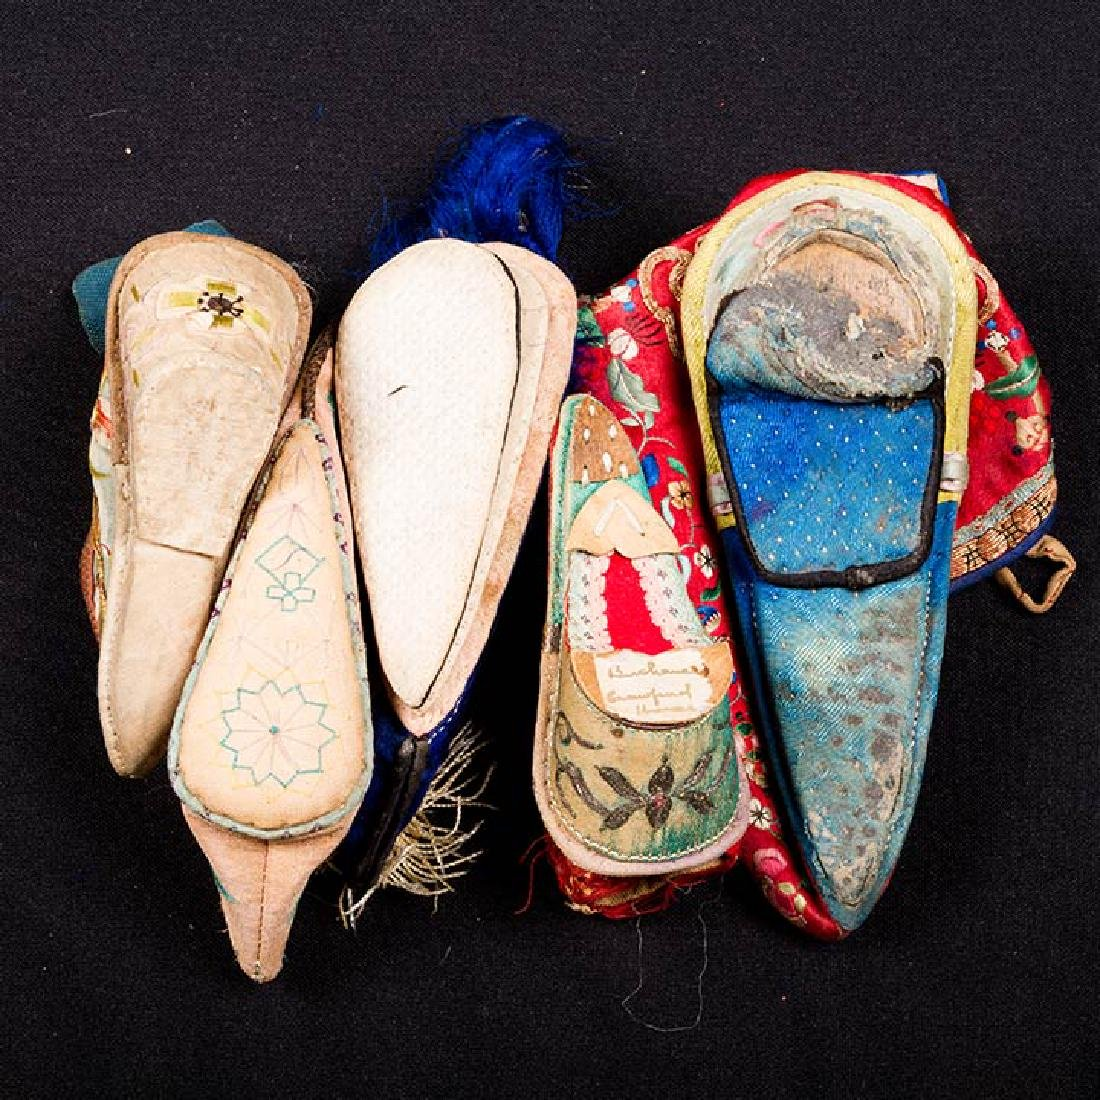 2 PAIR & 6 SINGLE SHOES FOR BOUND FEET, CHINA - 5